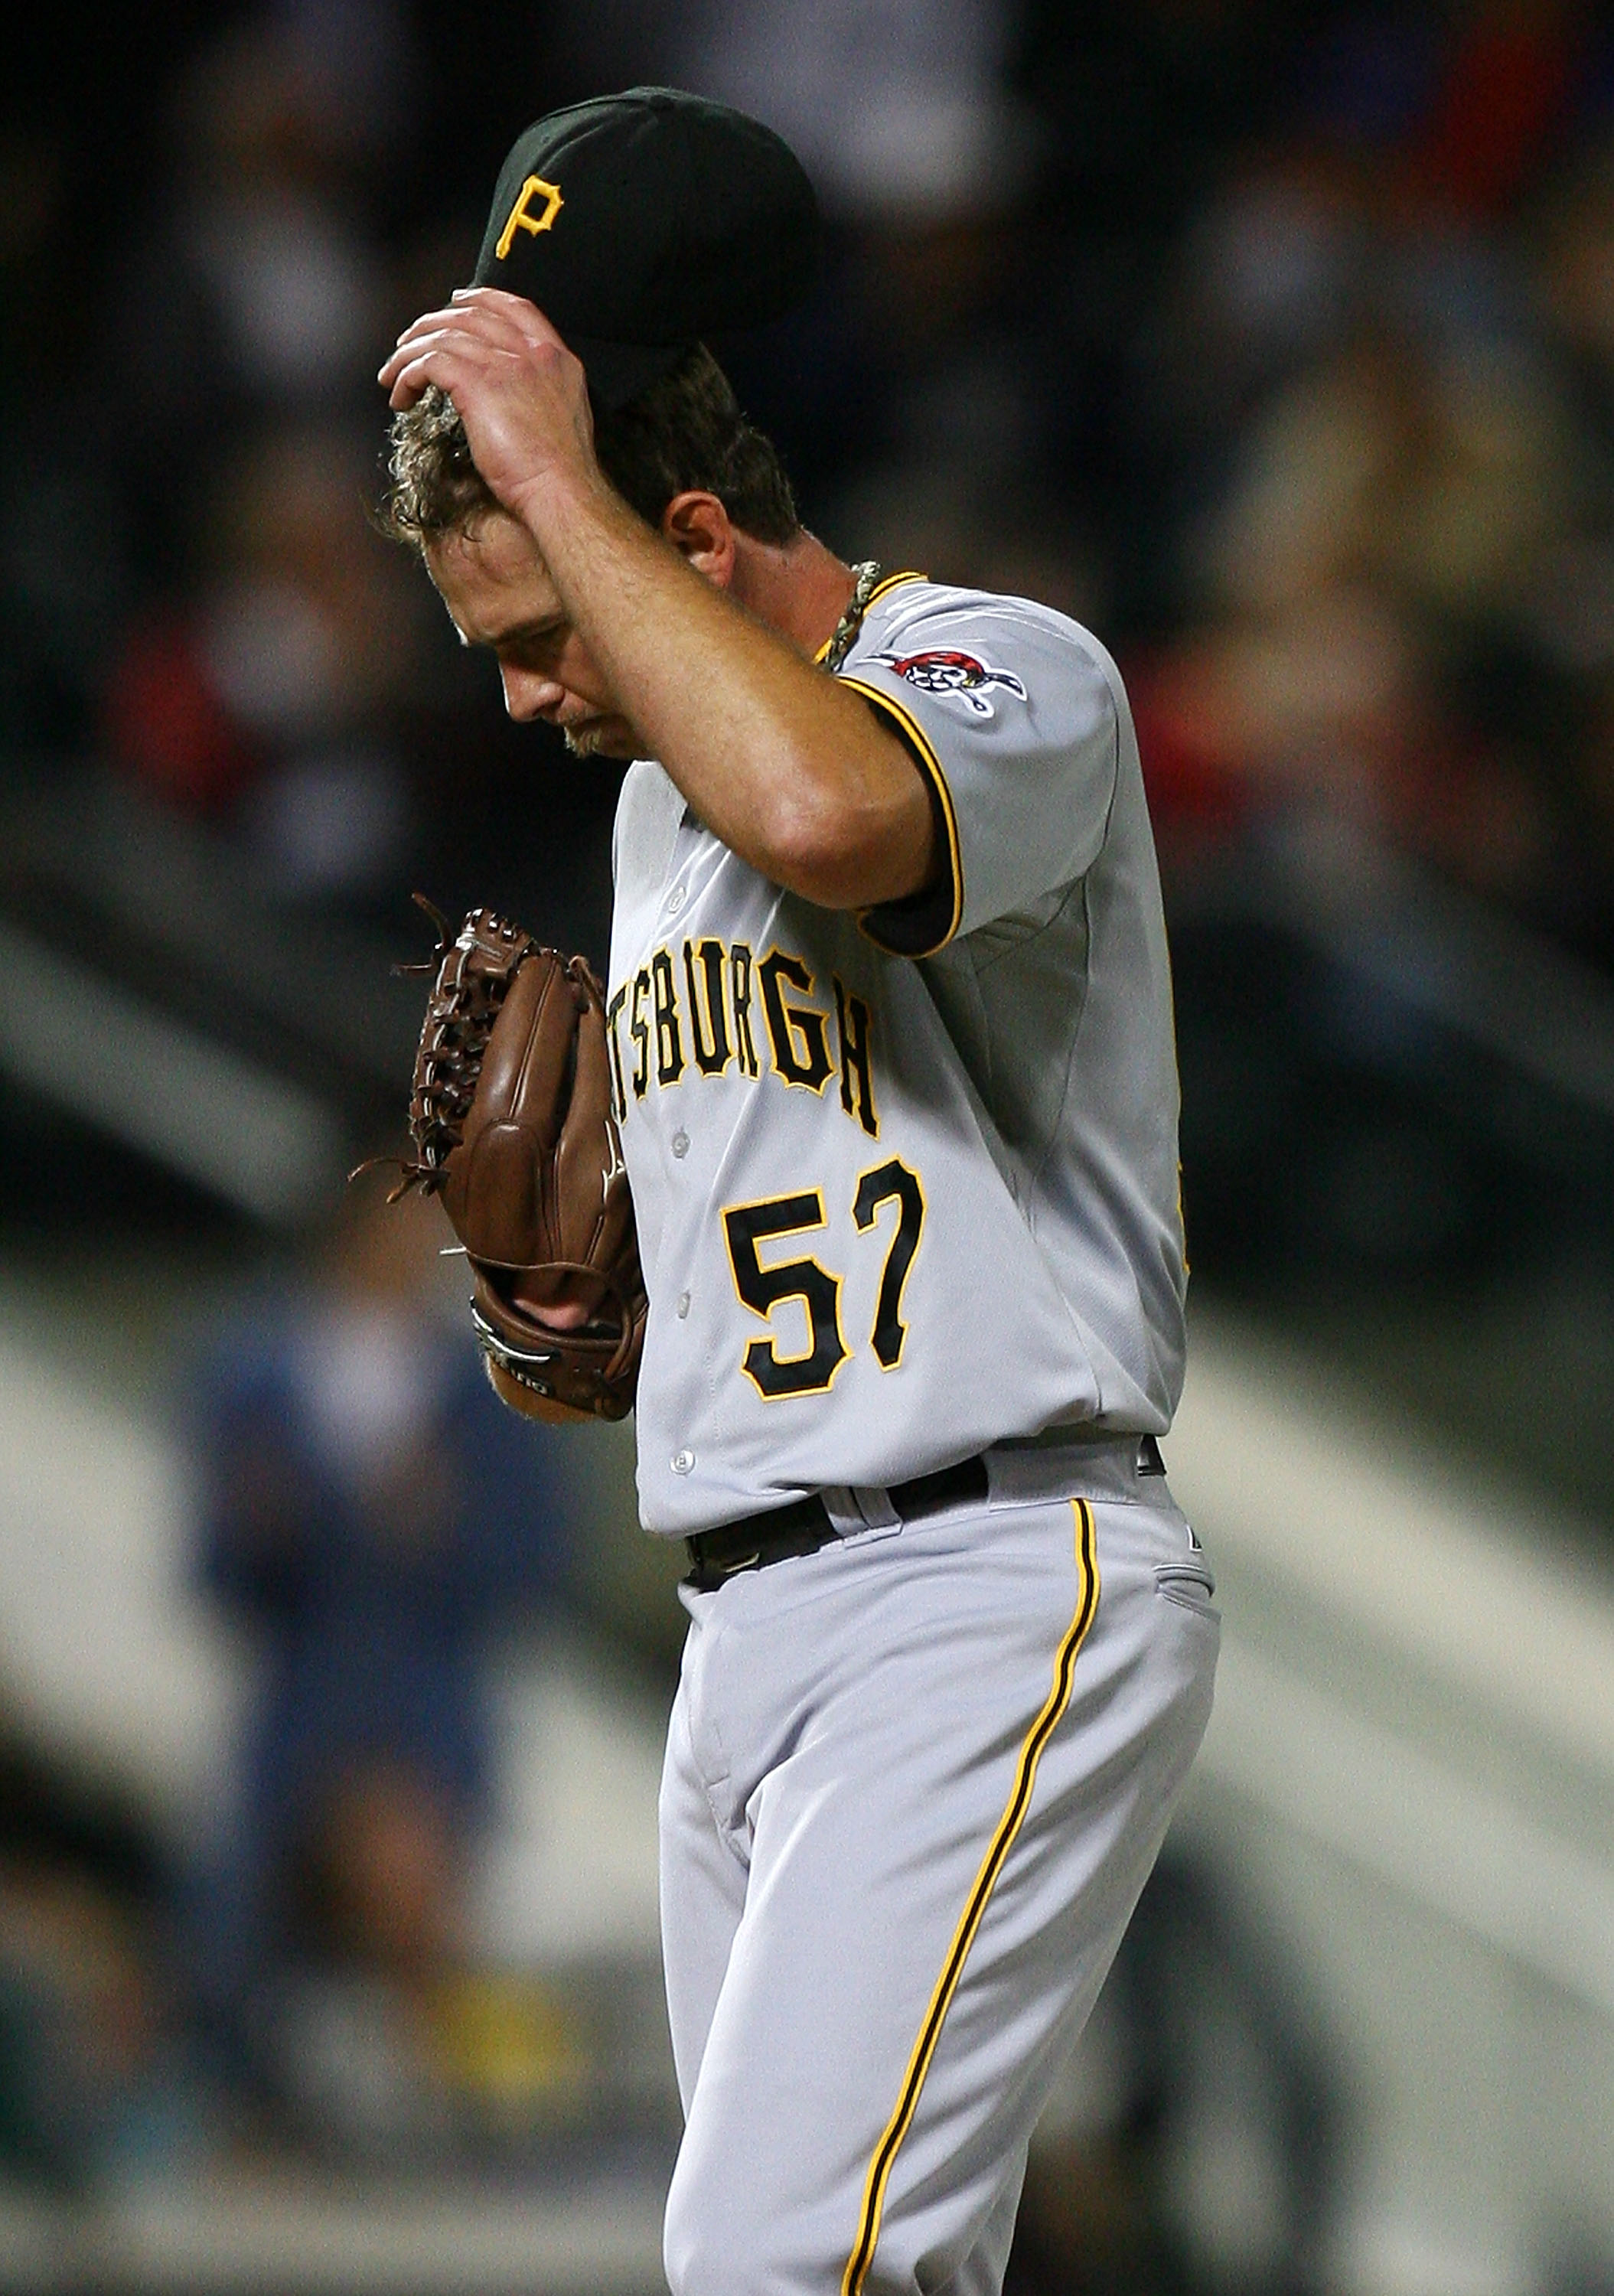 NEW YORK - SEPTEMBER 14:  Zach Duke #57 of the Pittsburgh Pirates reacts after allowing a home run against the New York Mets on September 14, 2010 at Citi Field in the Flushing neighborhood of the Queens borough of New York City.  (Photo by Andrew Burton/